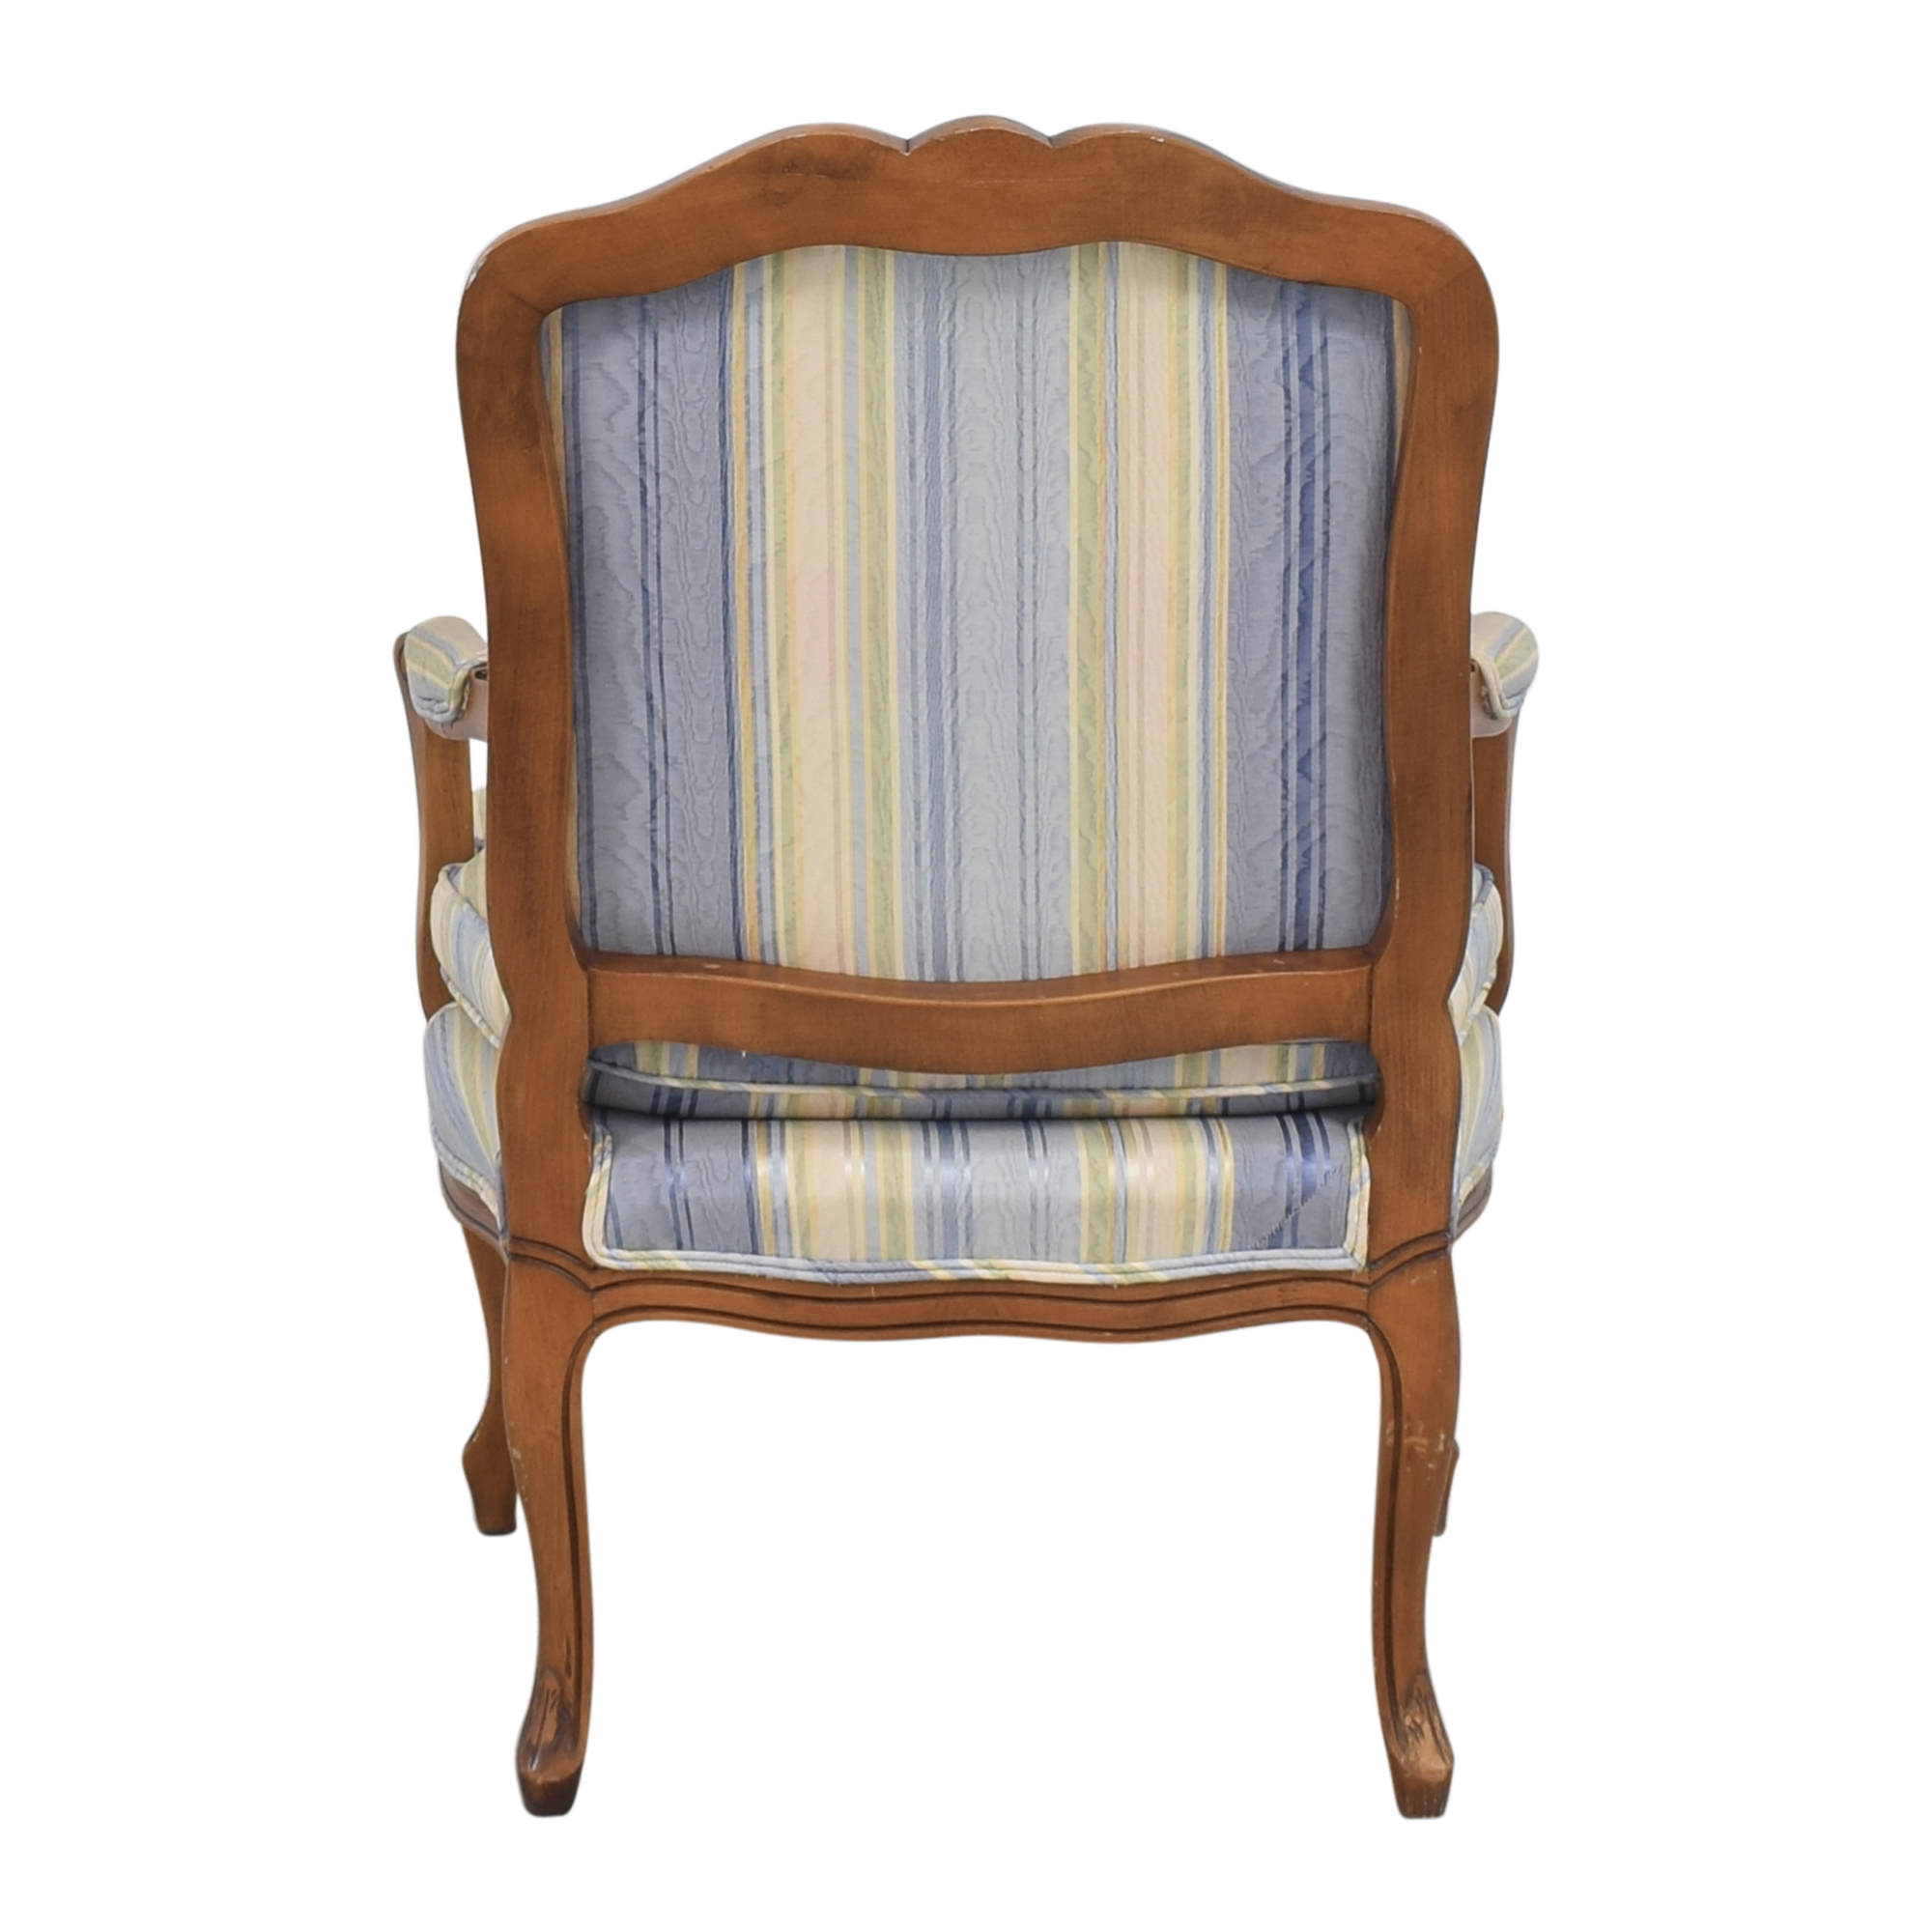 Ethan Allen Ethan Allen Accent Chair used